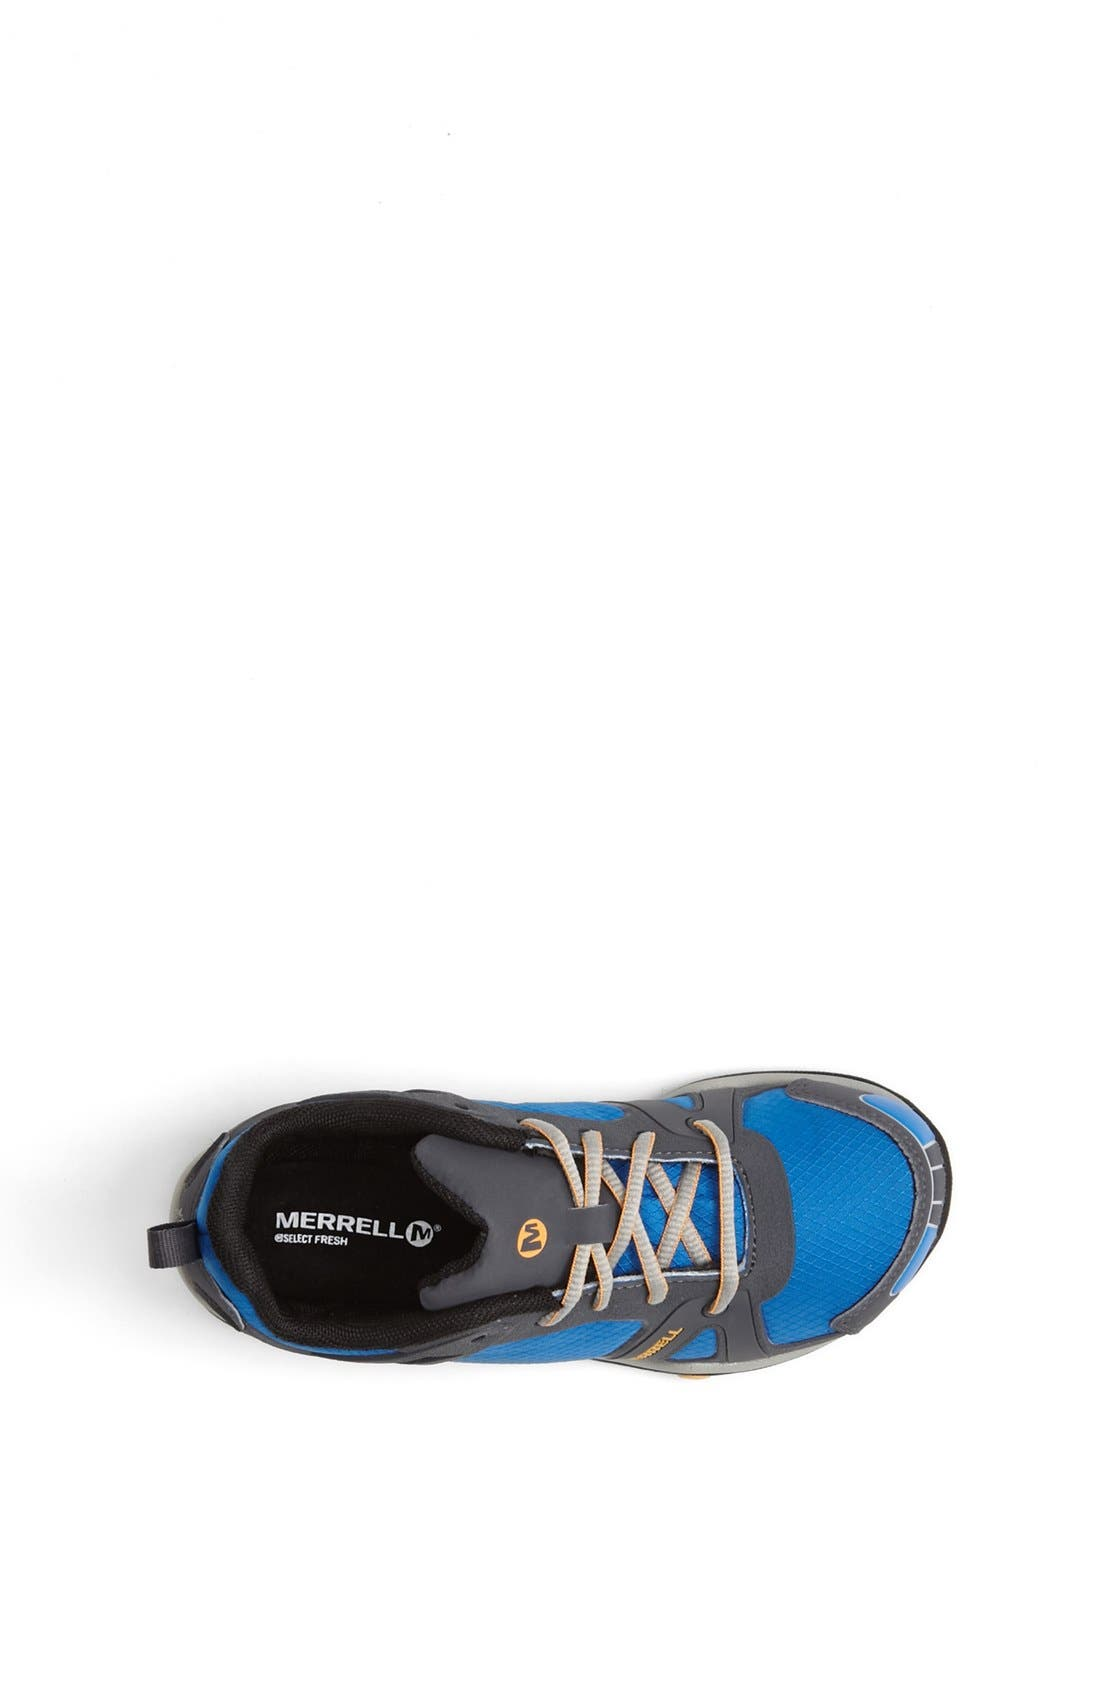 Alternate Image 3  - Merrell 'Proterra Sport' Sneaker (Toddler, Little Kid & Big Kid)